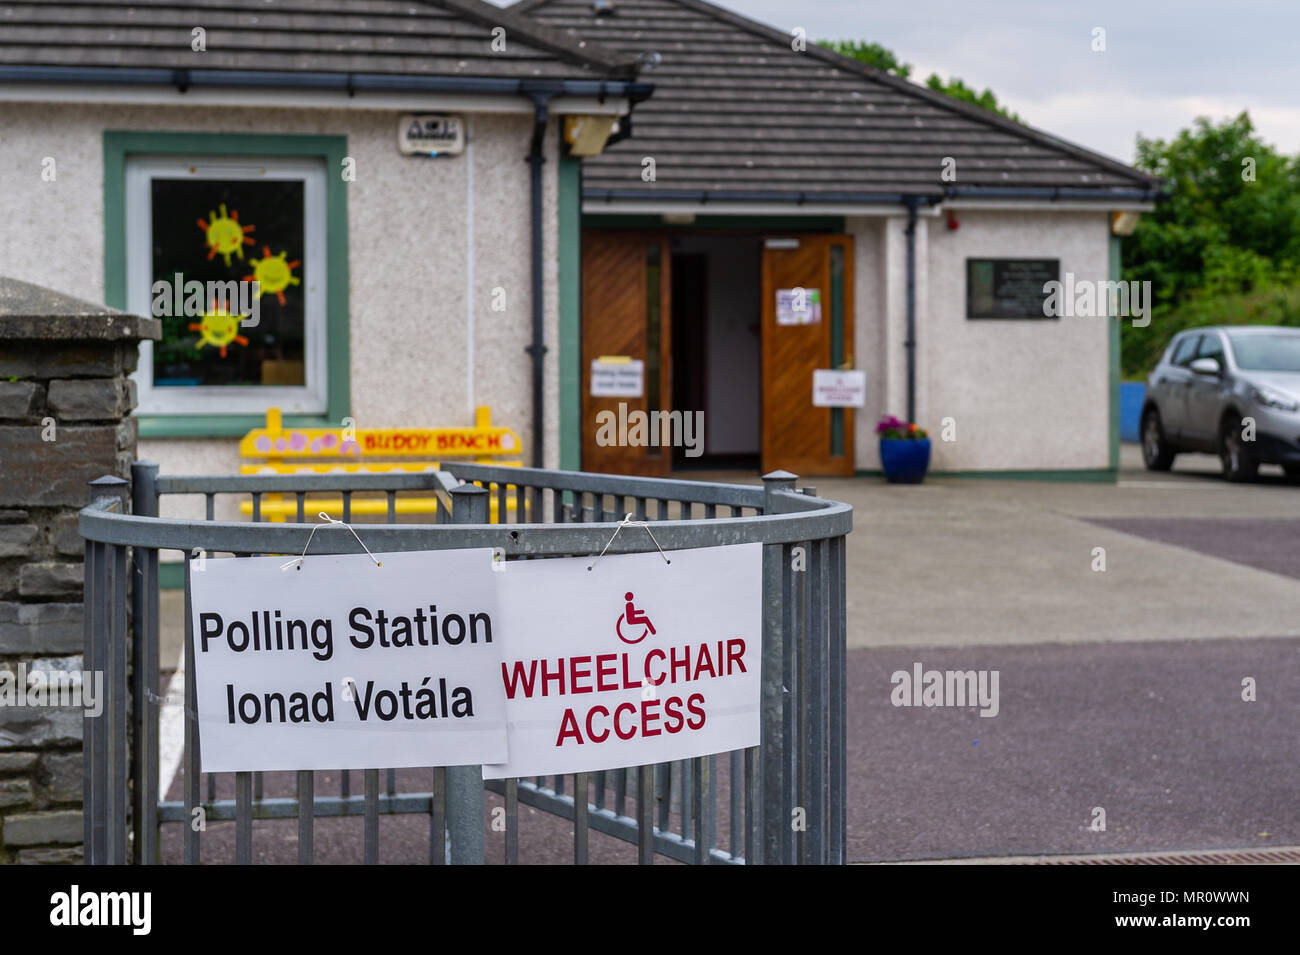 schull-ireland-25th-may-2018-today-is-referendum-day-on-the-eighth-amendment-of-the-constitution-act-1983-which-bans-mothers-from-having-abortions-the-vote-today-is-whether-to-retain-or-repeal-the-constitutional-ban-on-abortion-pictured-is-the-polling-station-in-scoil-mhuire-national-school-schull-west-cork-ireland-credit-andy-gibsonalamy-live-news-MR0WWN.jpg